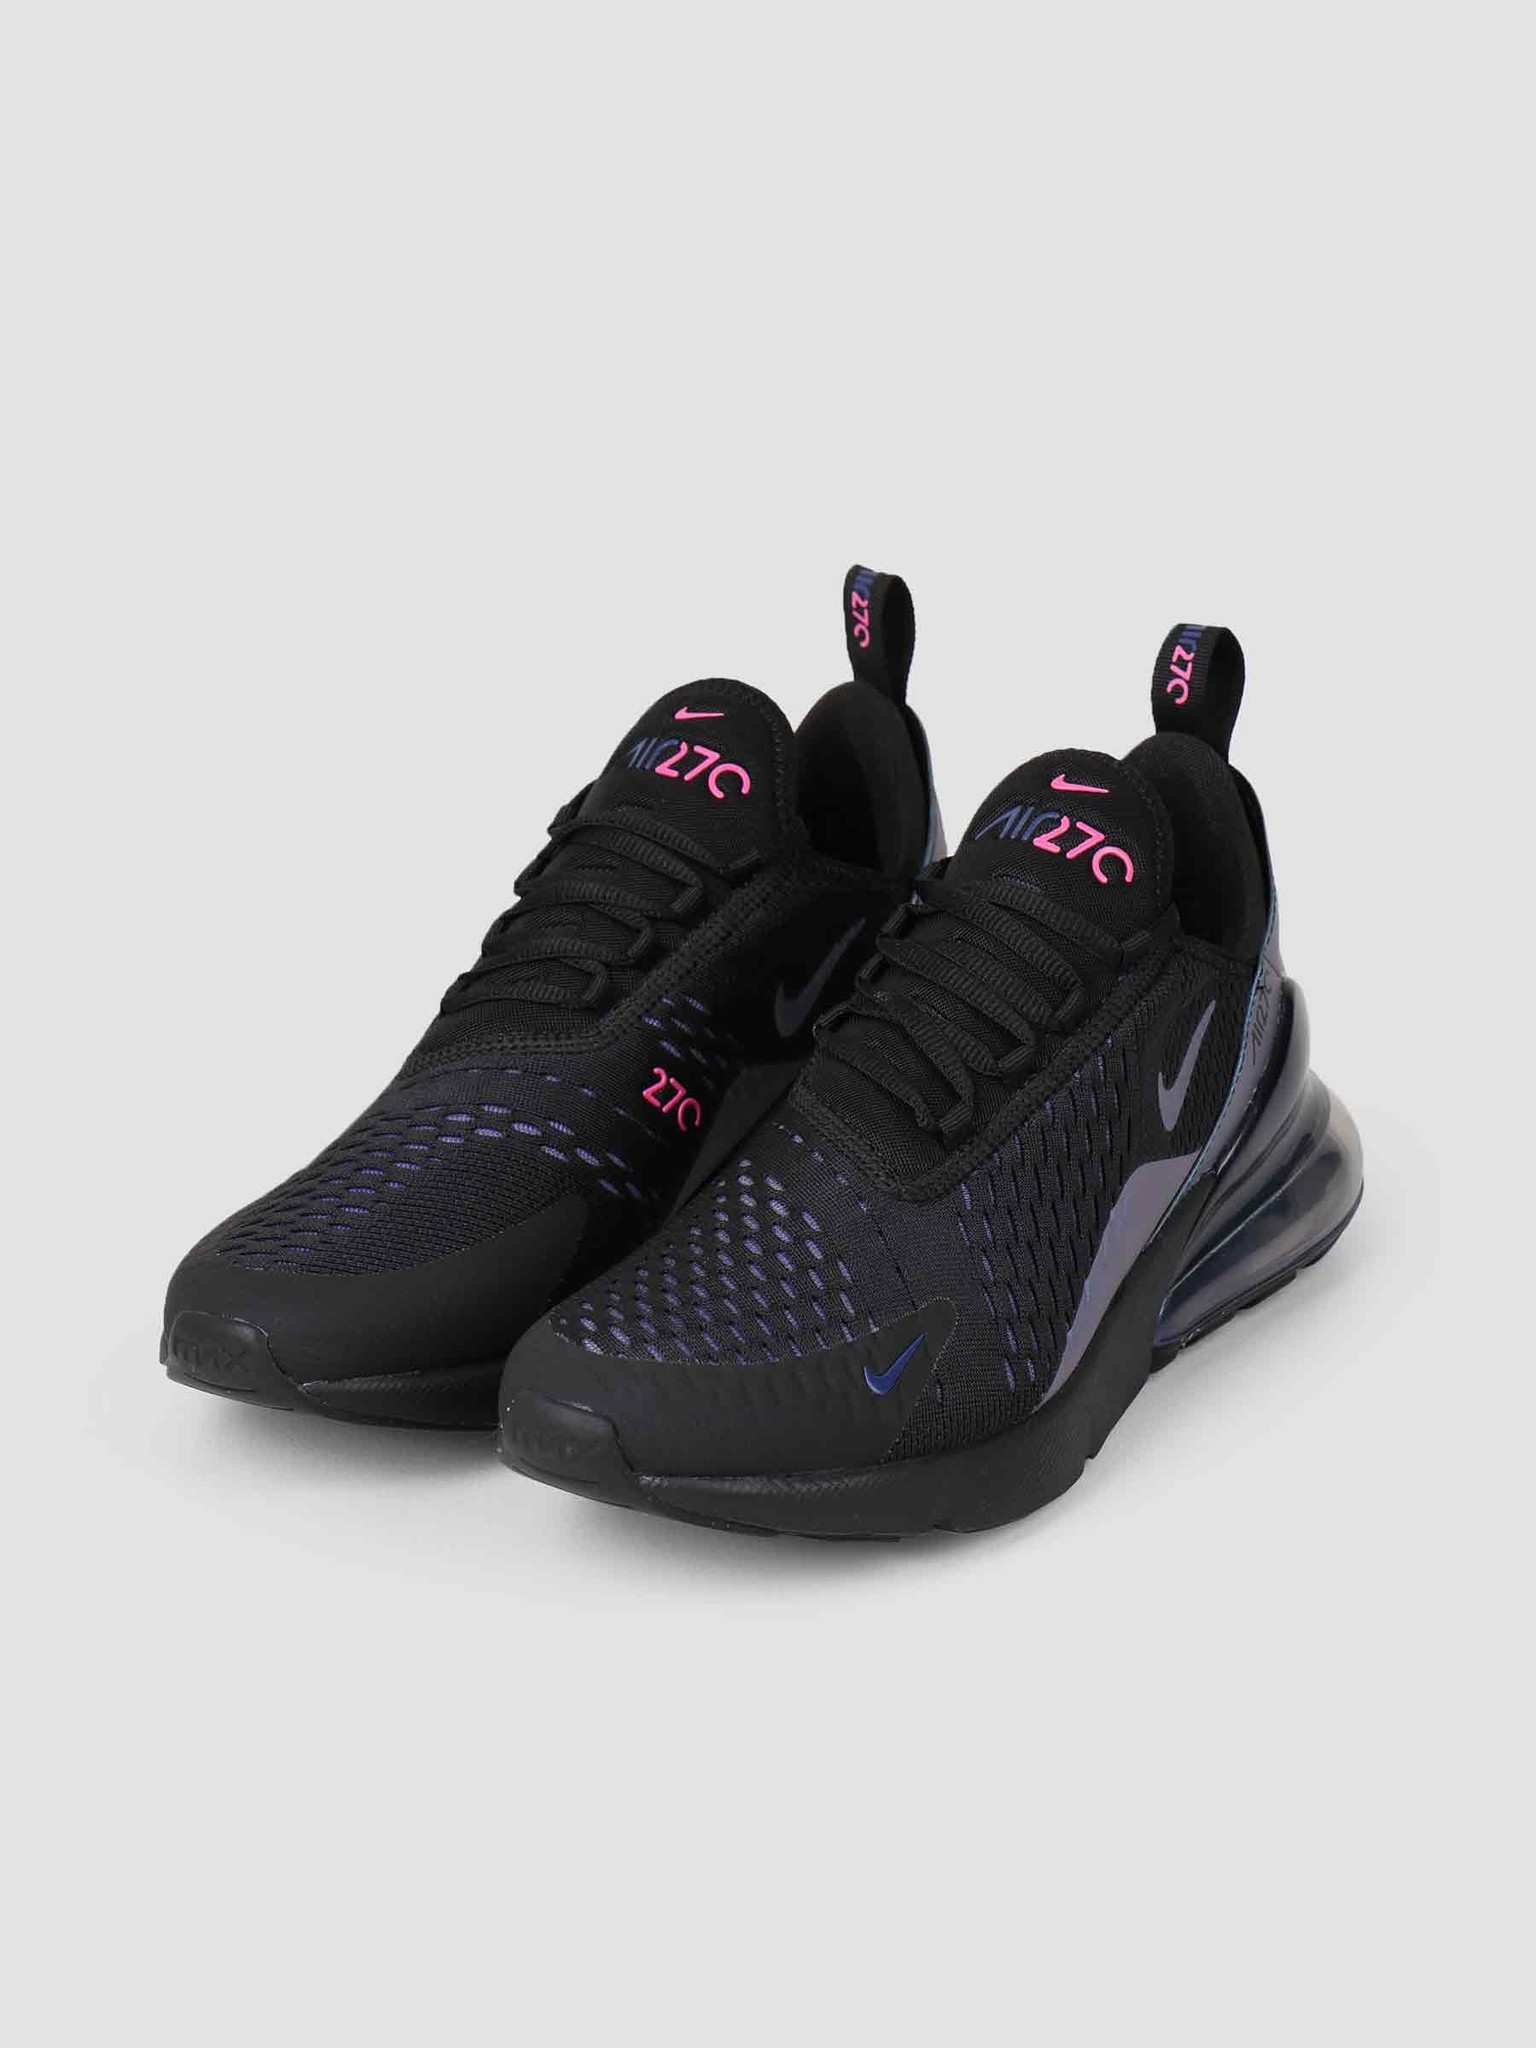 Nike Nike Air Max 270 Black Laser AH8050-020